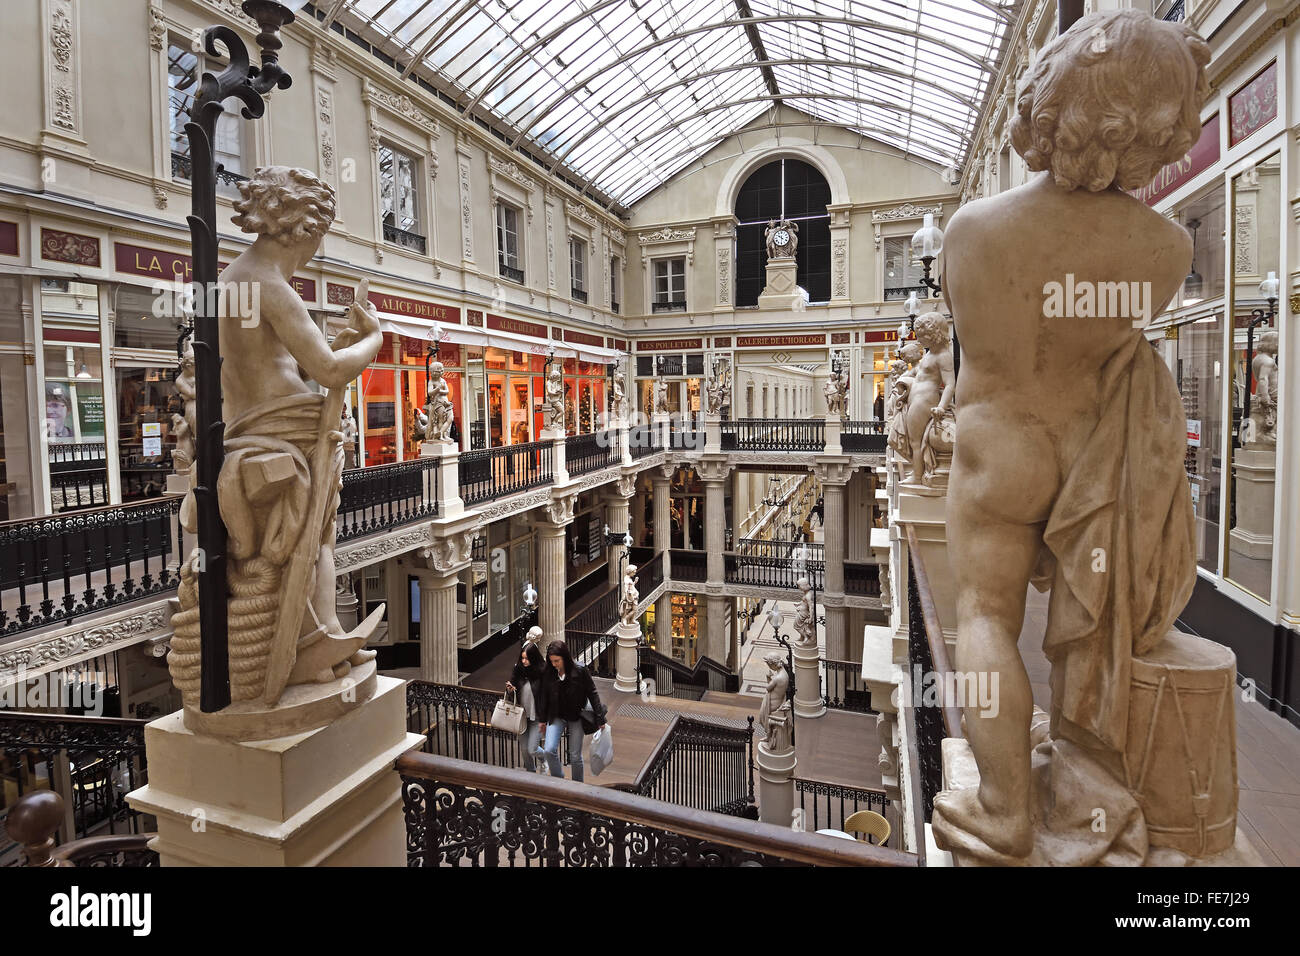 passage pommeraye 1843 nantes french france pommeraye is a small stock photo royalty free. Black Bedroom Furniture Sets. Home Design Ideas